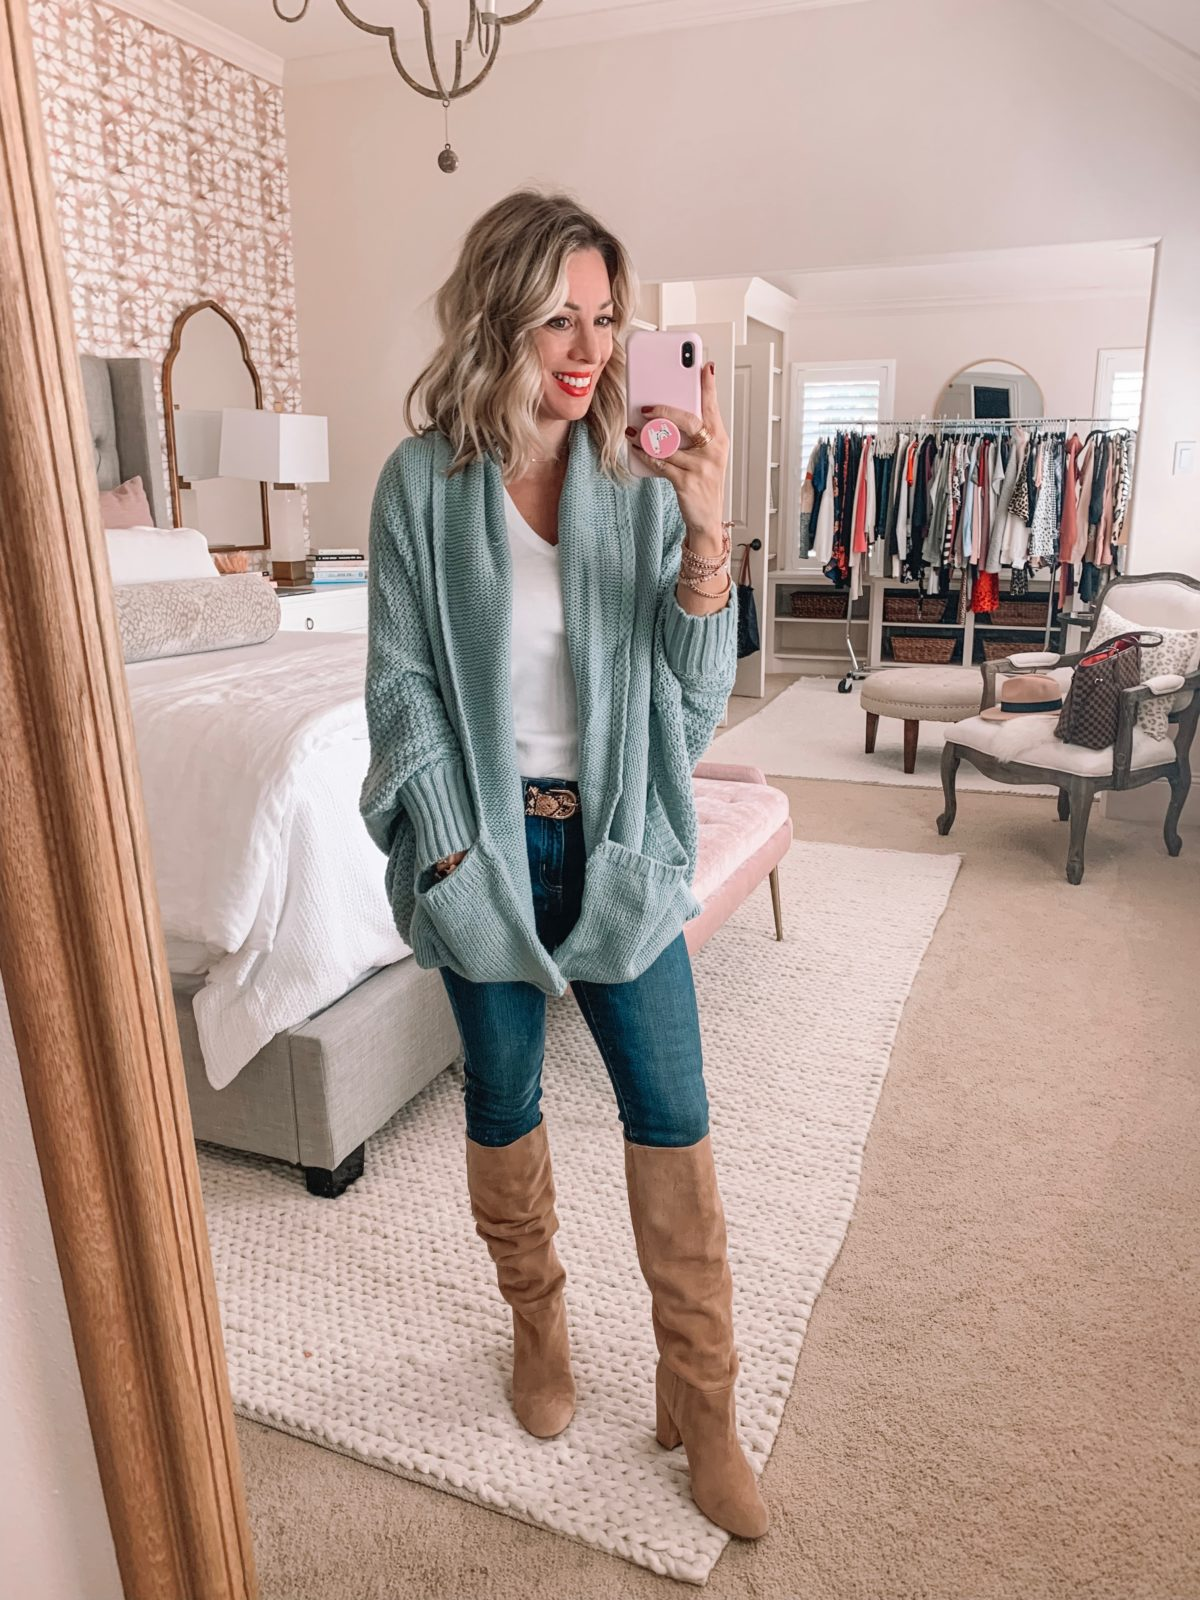 Amazon Prime Fashion- Chunky Cardigan and Jeans